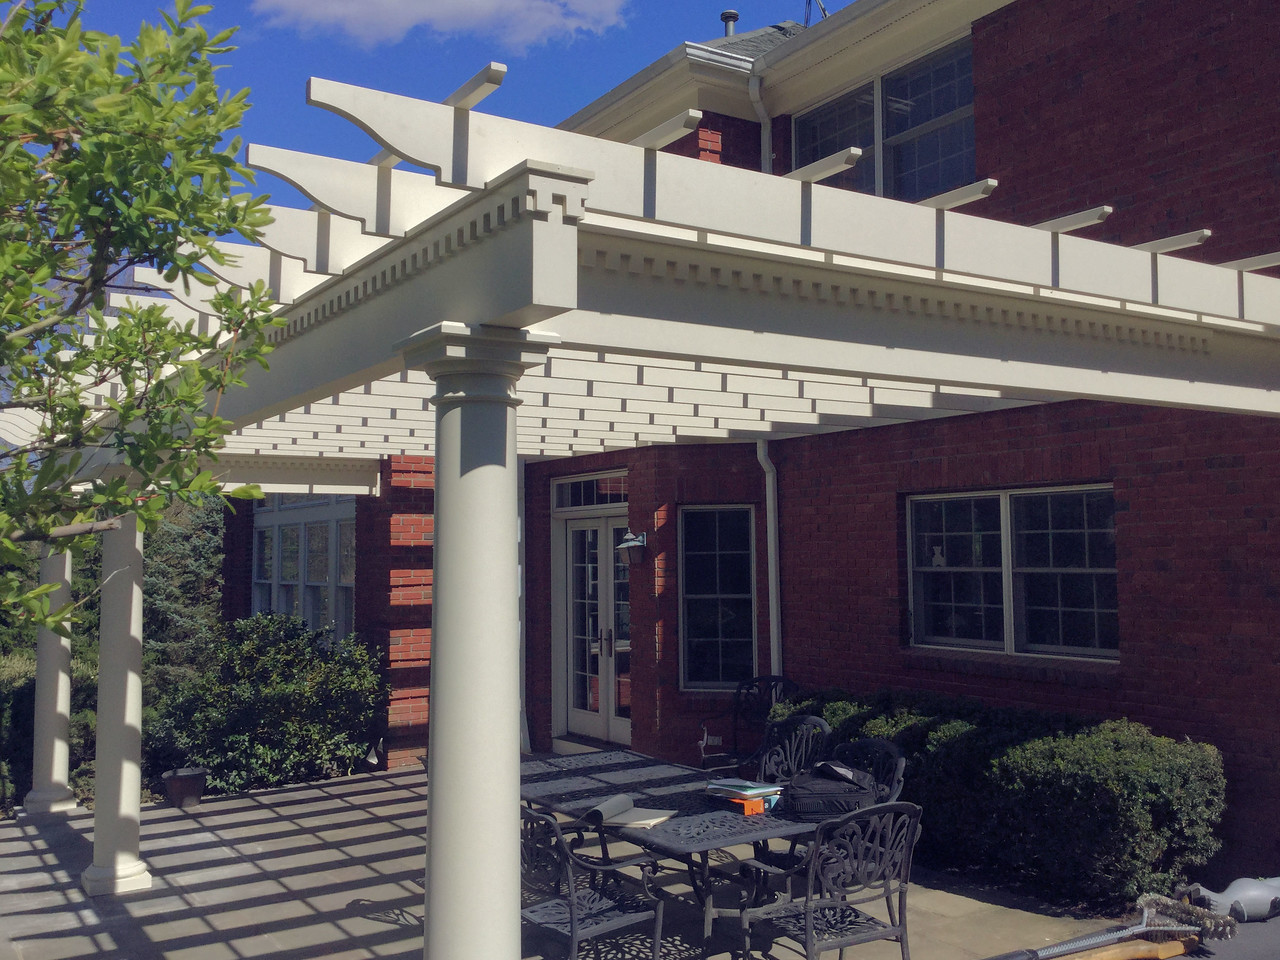 190 - Briarcliff Manor NY - Pergola with Dentil Work